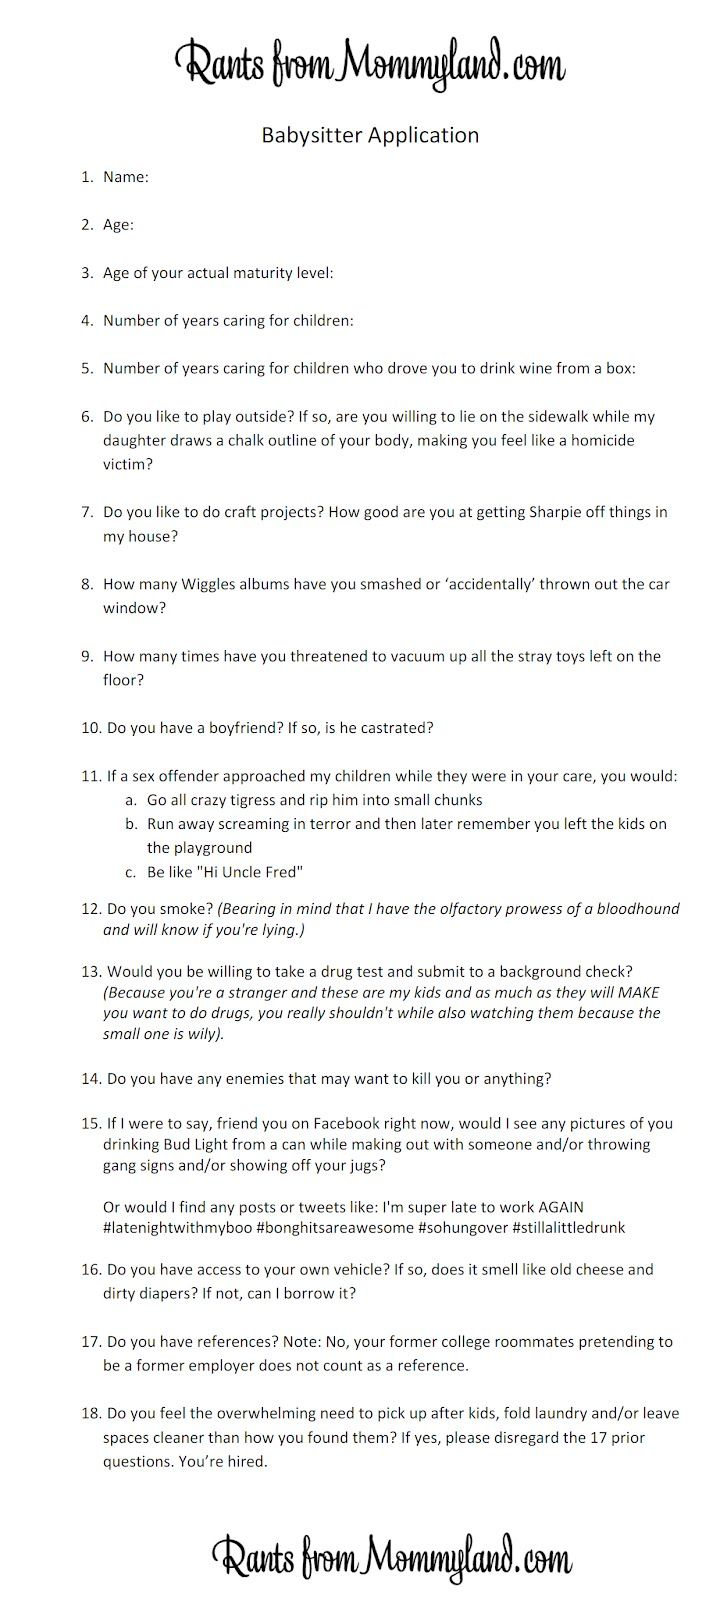 Babysitter application, just a tip right click view image